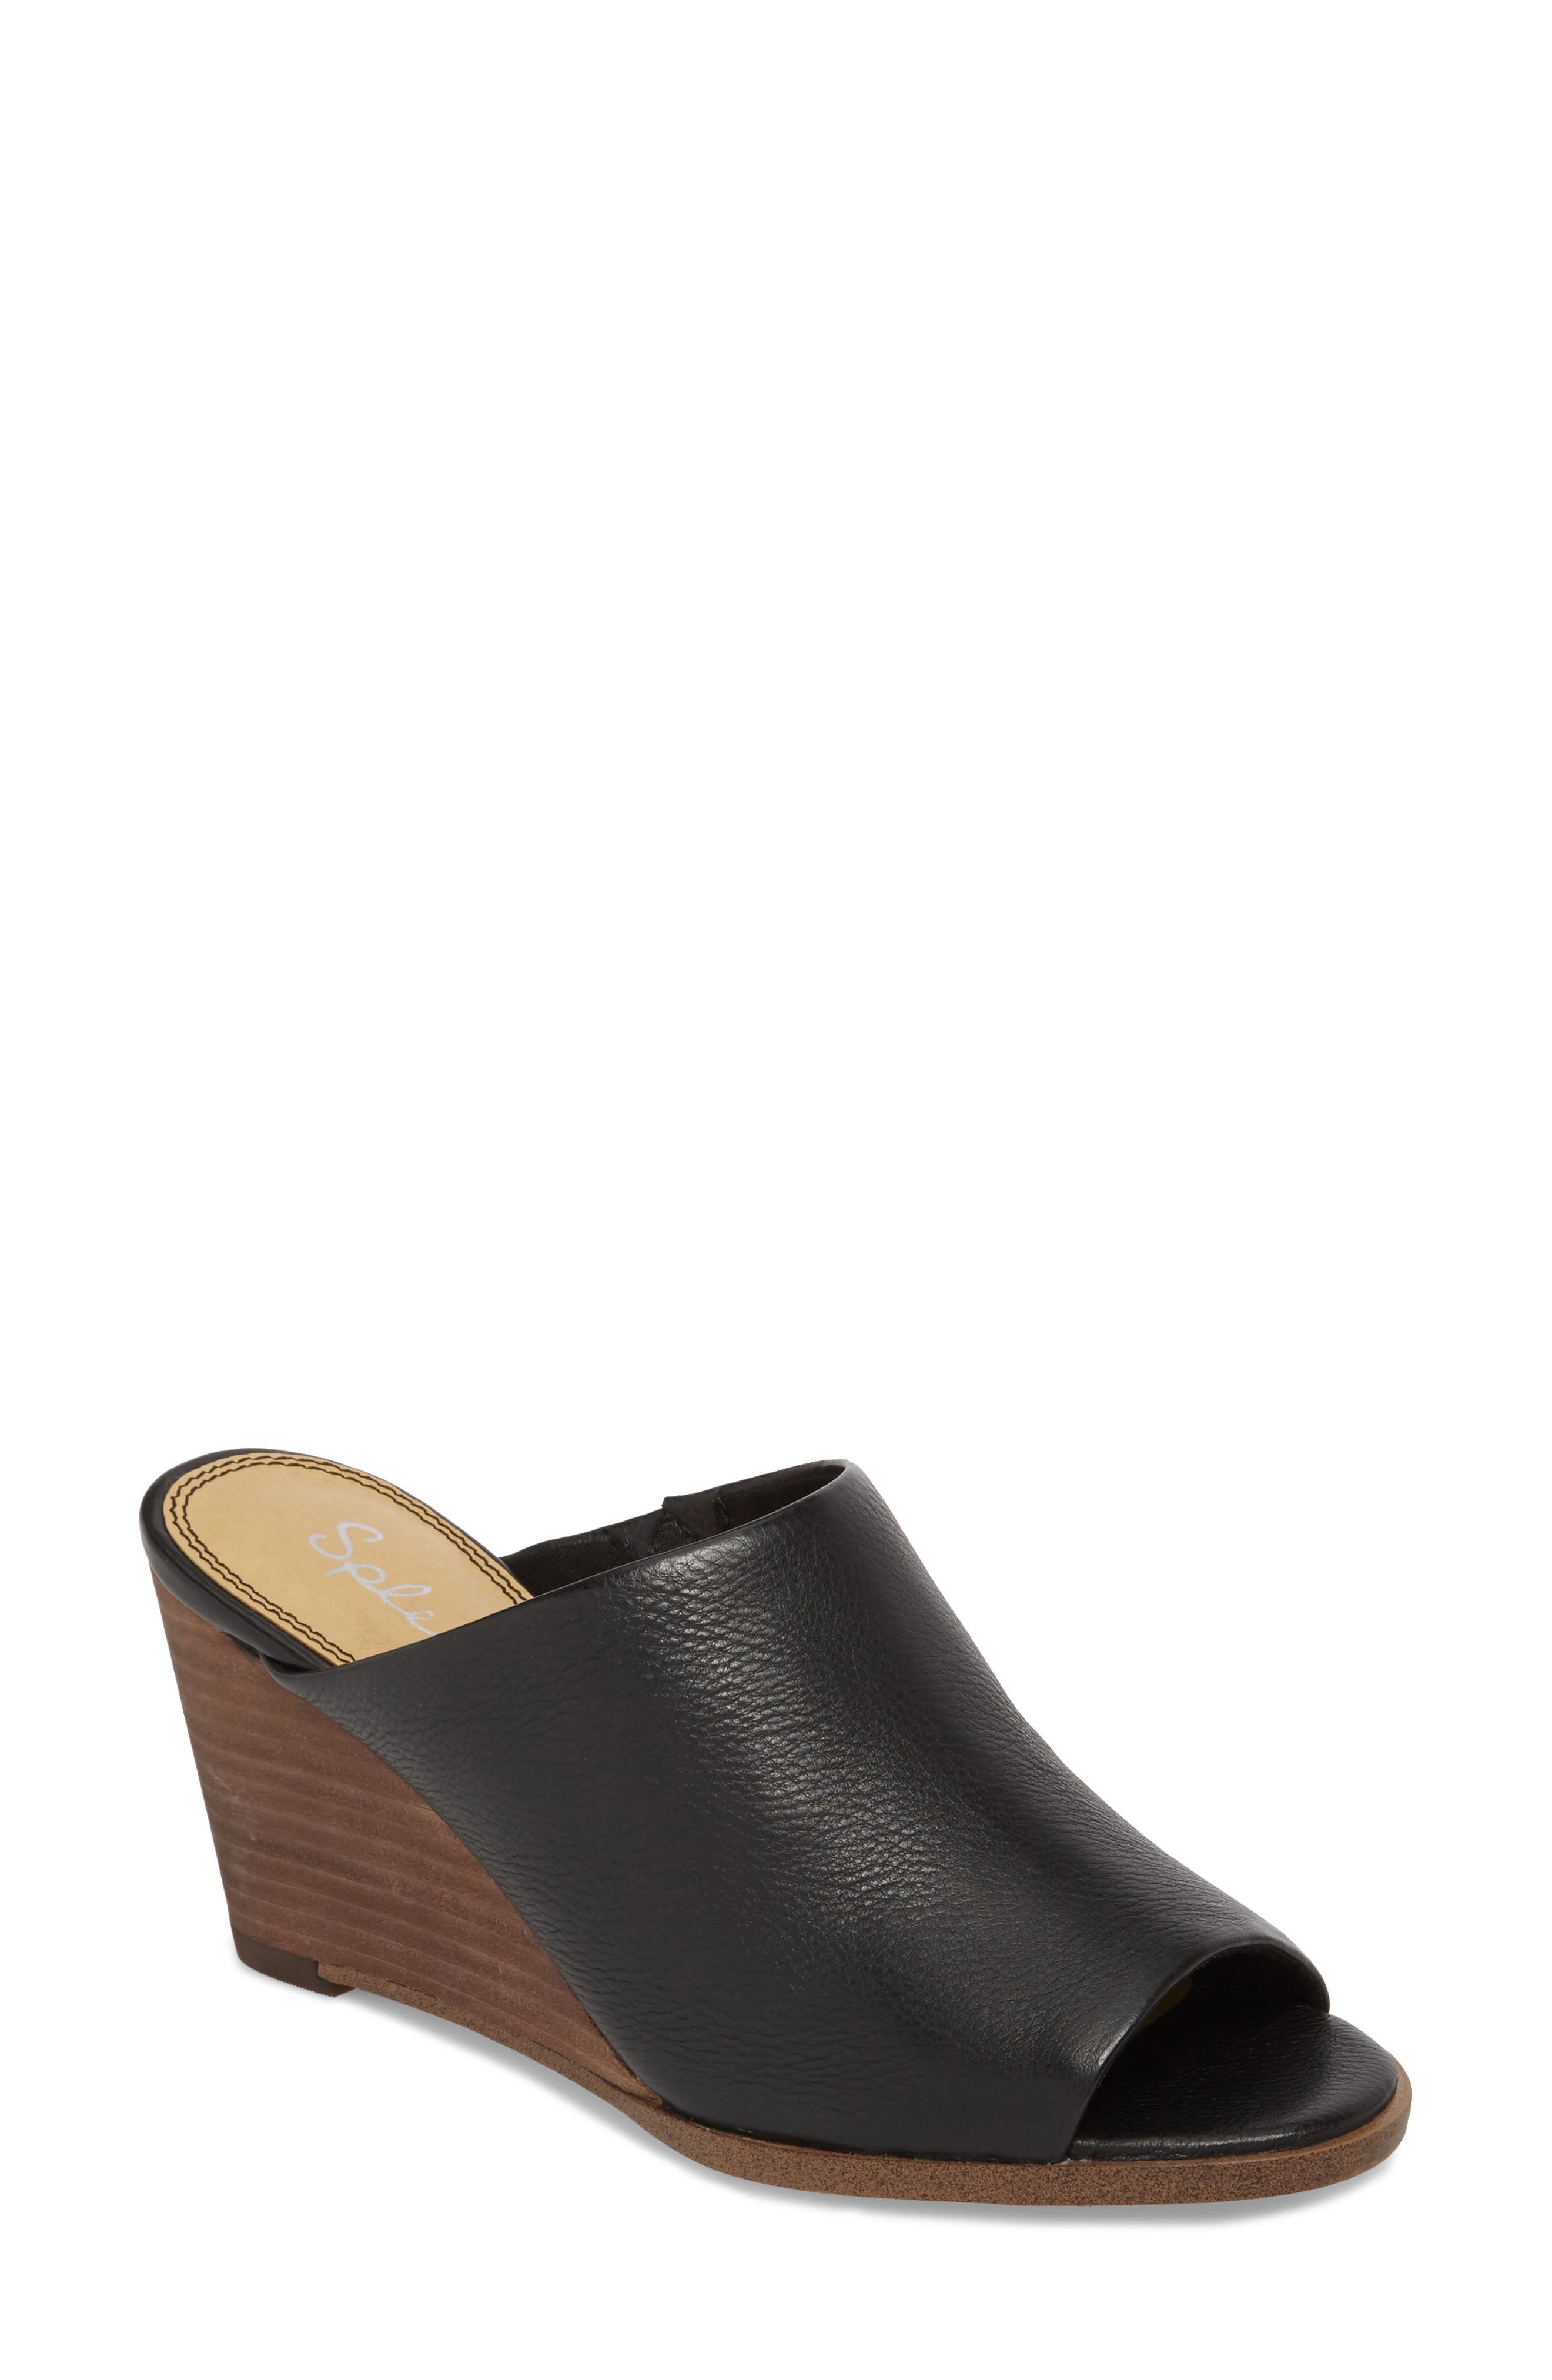 SPLENDID Fenwick Leather Wedge Sandals in Black